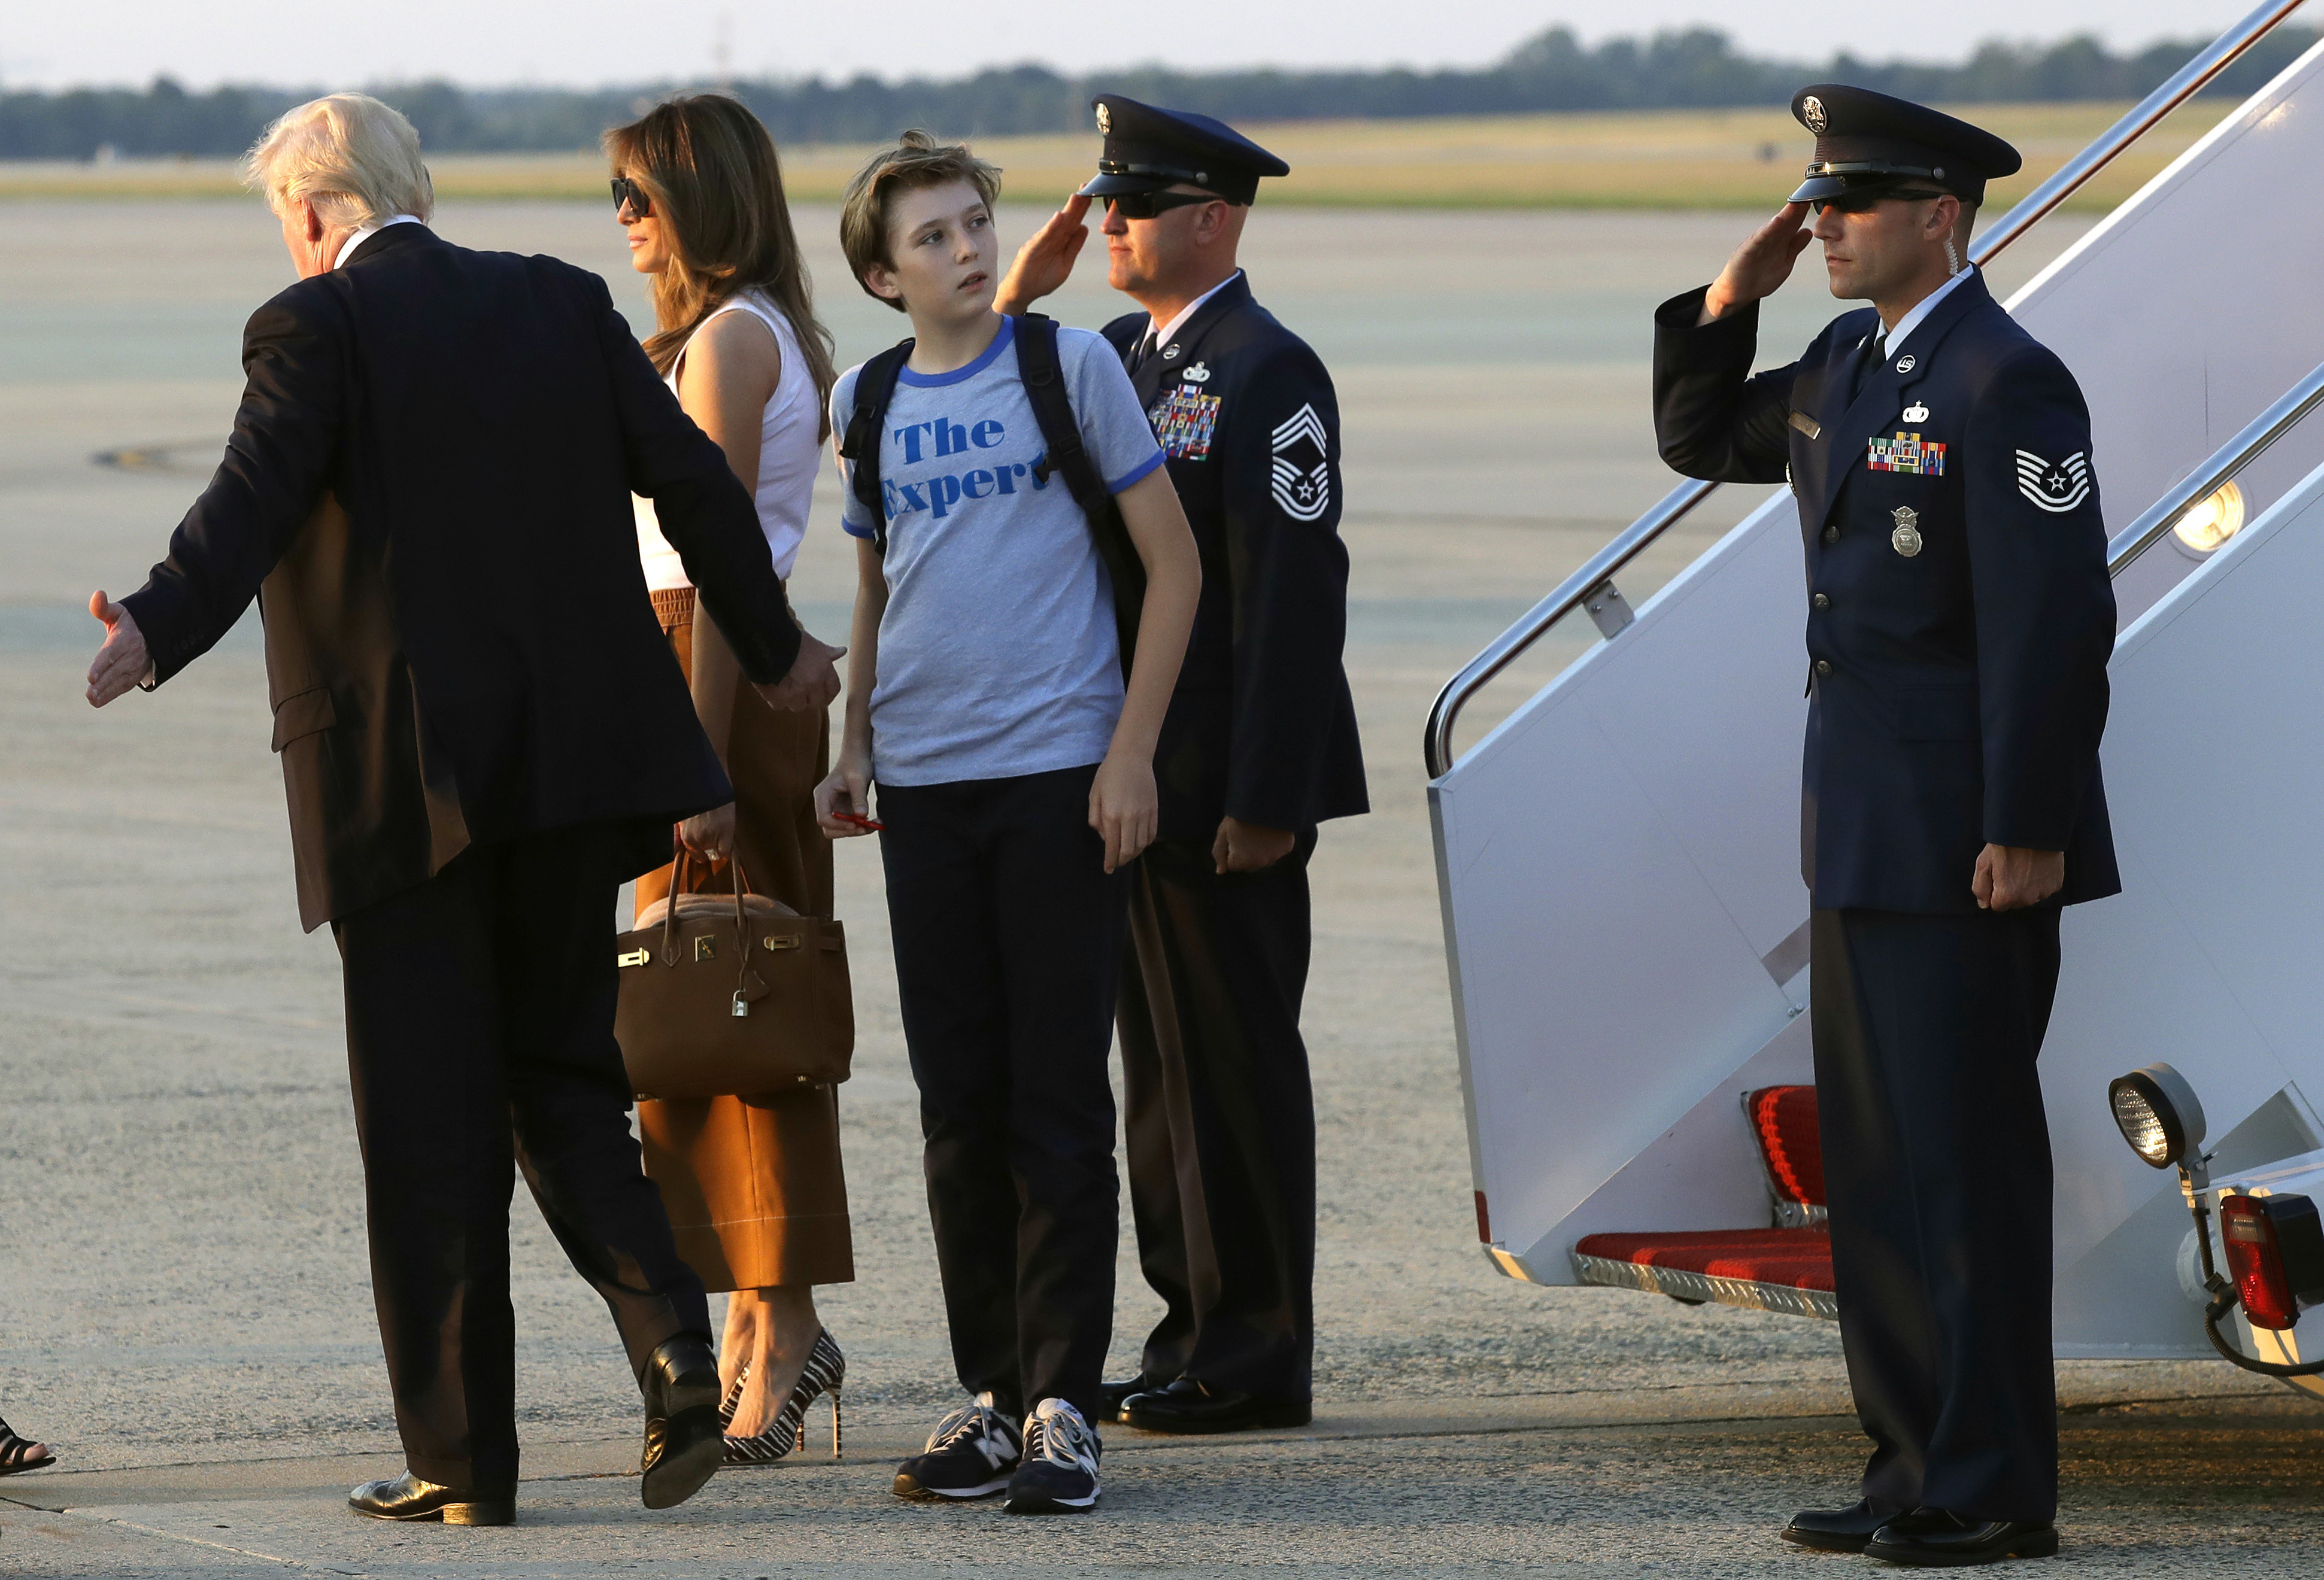 Barron Trump, son of President Donald Trump, looks back at Air Force One after arriving with President Trump, left, and first lady Melania Trump at Andrews Air Force Base, Md., Sunday, June 11, 2017. Trump is returning to Washington after spending the weekend at Trump National Golf Club in Bedminster, N.J. (AP Photo/Patrick Semansky)